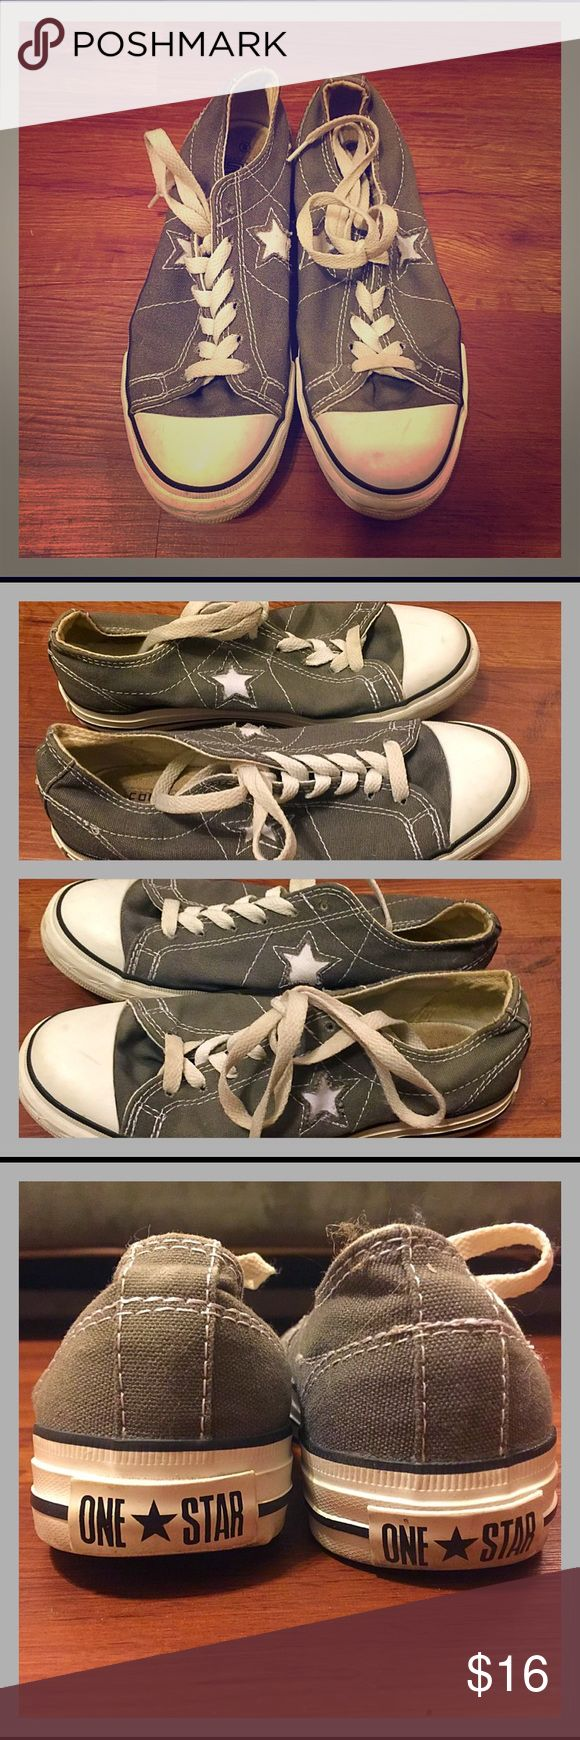 Converse One Star Only worn a couple of times - minimal signs of wear.  With Converse, I would typically suggest going a size smaller.  I wear a 7, and these fit more like a 7 than a 6.  🌟 TOP RATED SELLER 🌟 FAST SHIPPER 🌟 Converse One Star Shoes Sneakers